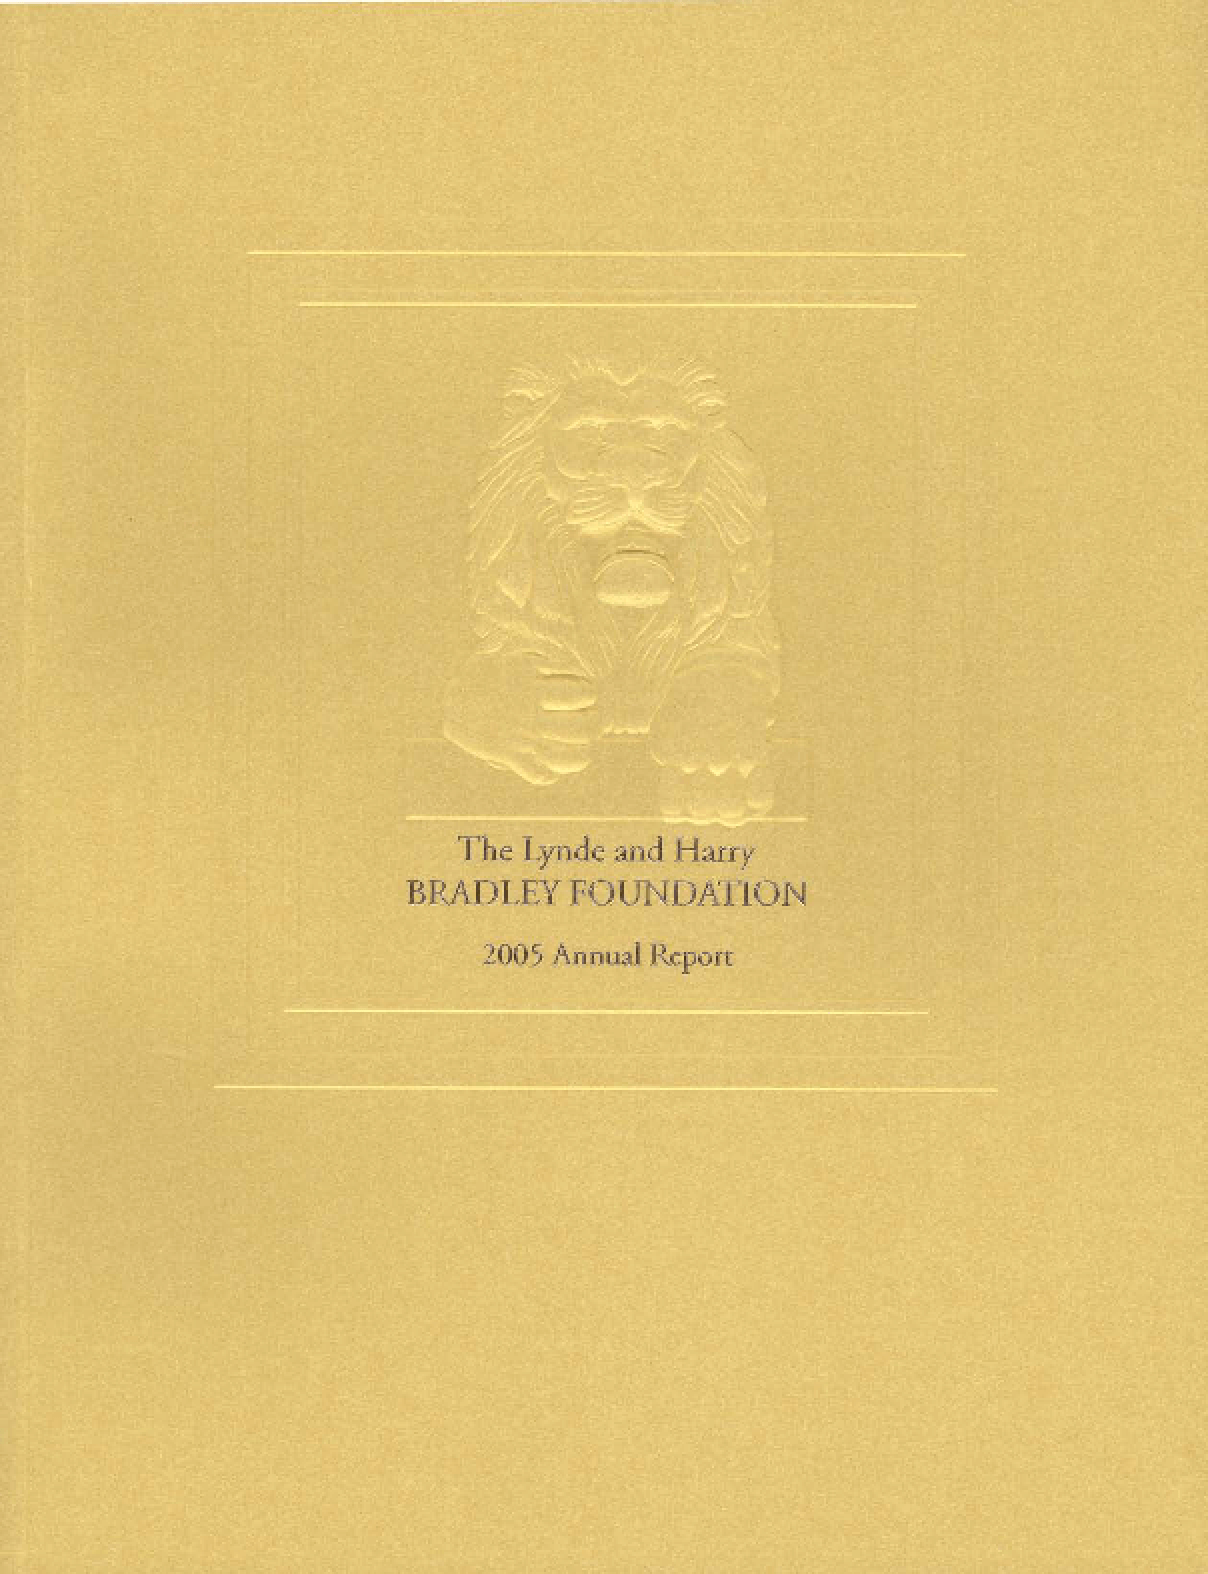 Lynde and Harry Bradley Foundation Inc. - 2005 Annual Report